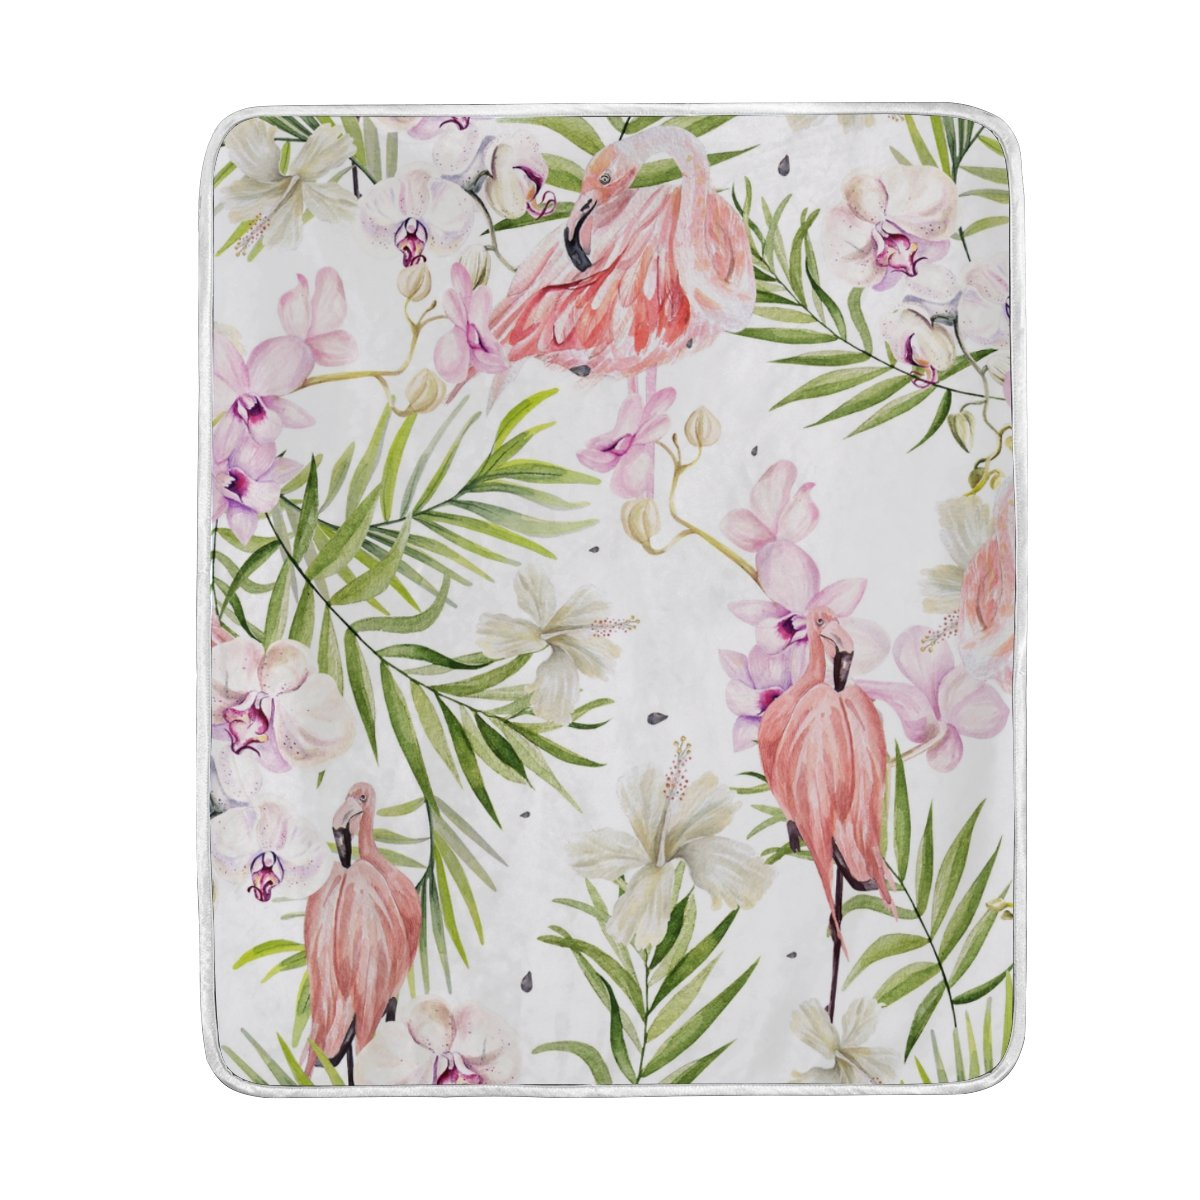 My Little Nest Warm Throw Blanket Watercolor Hibiscus Flowers Flamingo Bird Lightweight MicrofiberSoft Blanket Everyday Use for Bed Couch Sofa 50'' x 60''